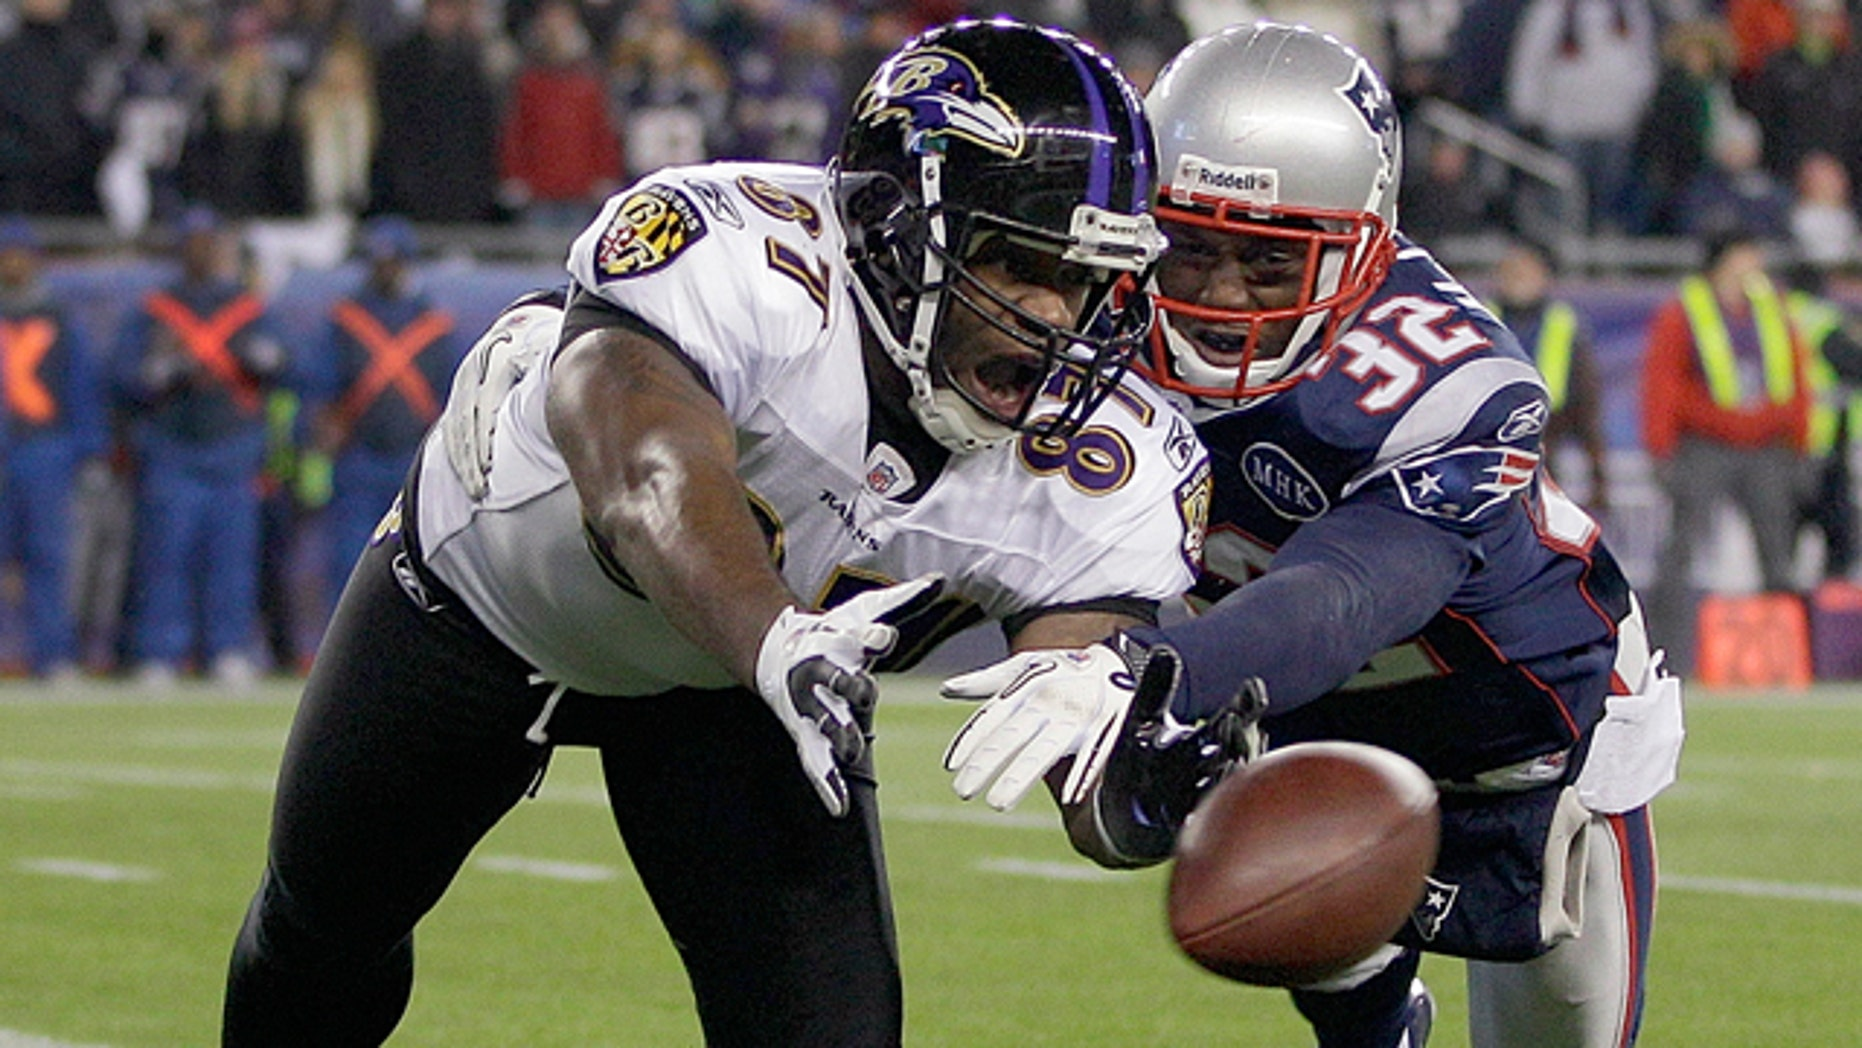 Jan. 22, 2012: Baltimore Ravens tight end Kris Wilson (87) is defended by New England Patriots cornerback Devin McCourty (32) as he tries to make a catch during the second half of the AFC Championship NFL football game in Foxborough, Mass.